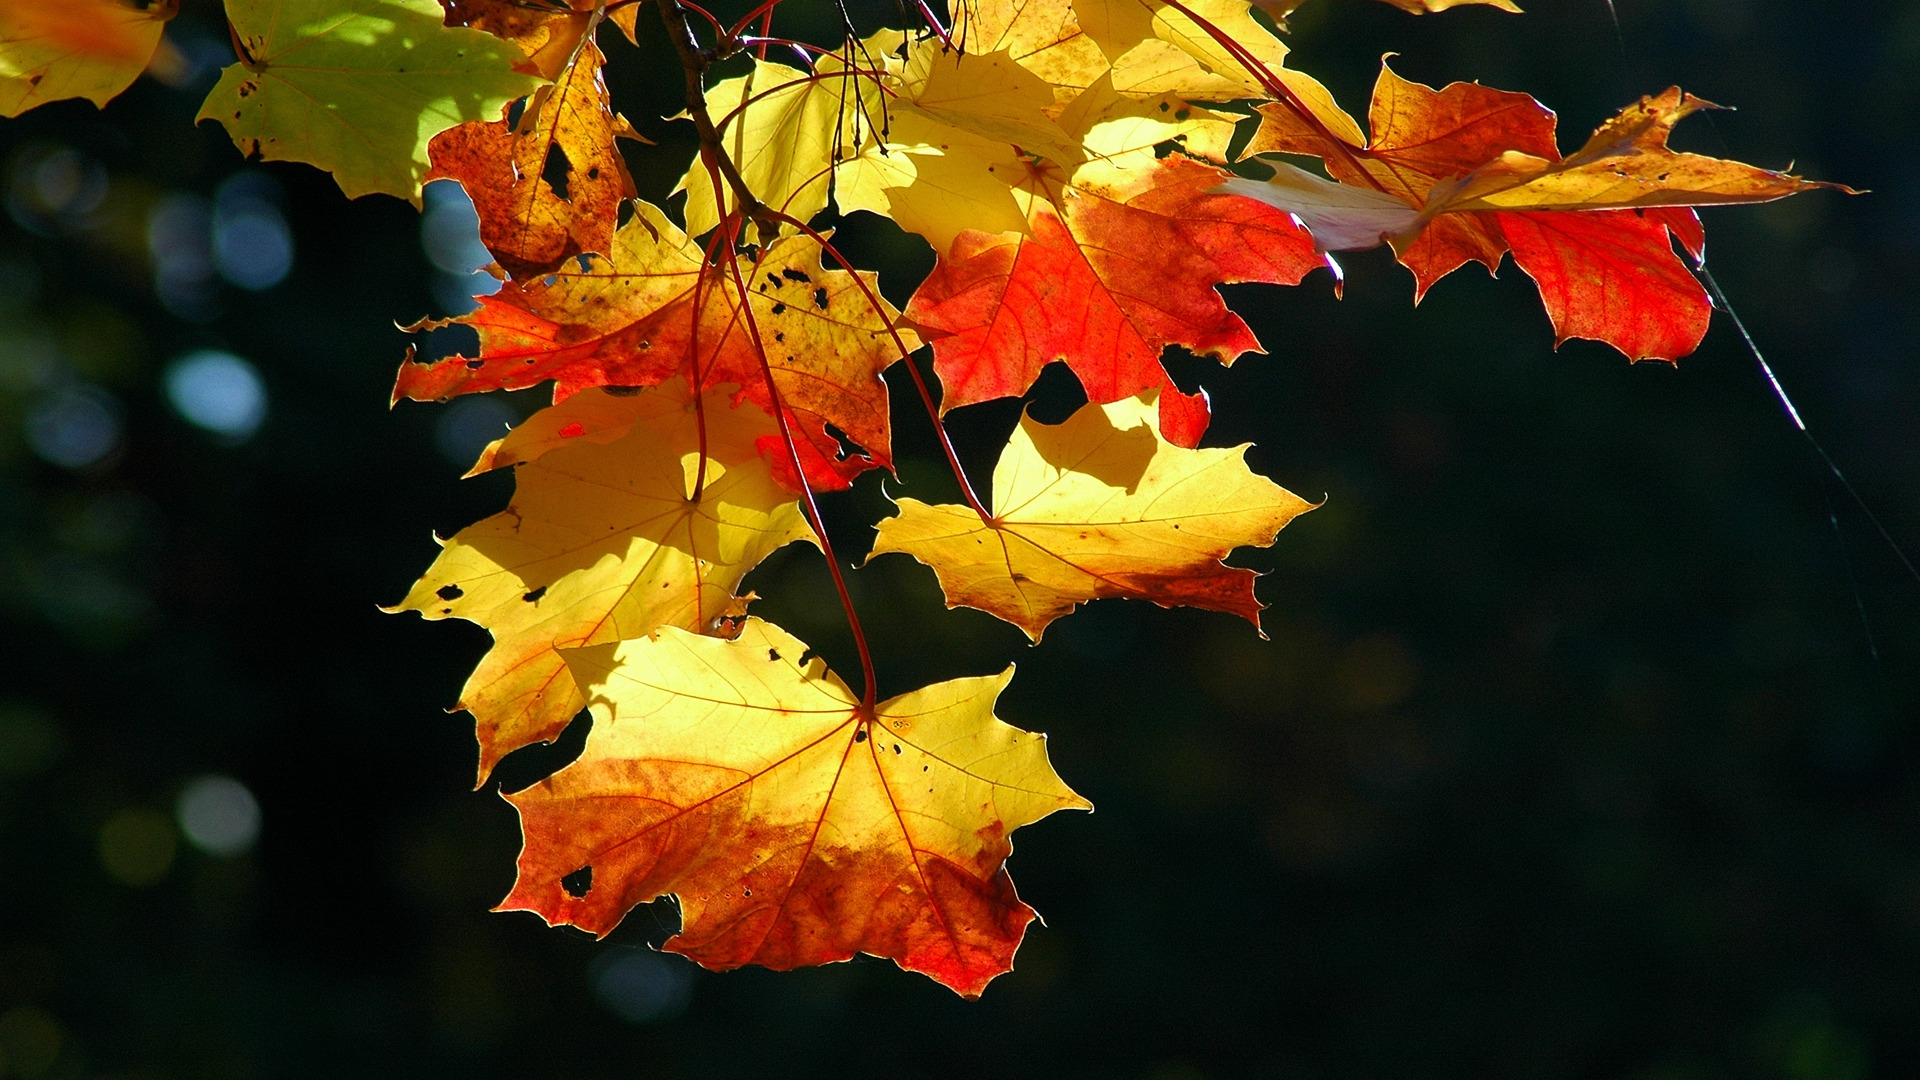 wwwhawaiidermatologycomfallfall leaves desktop wallpaperhtm 1920x1080